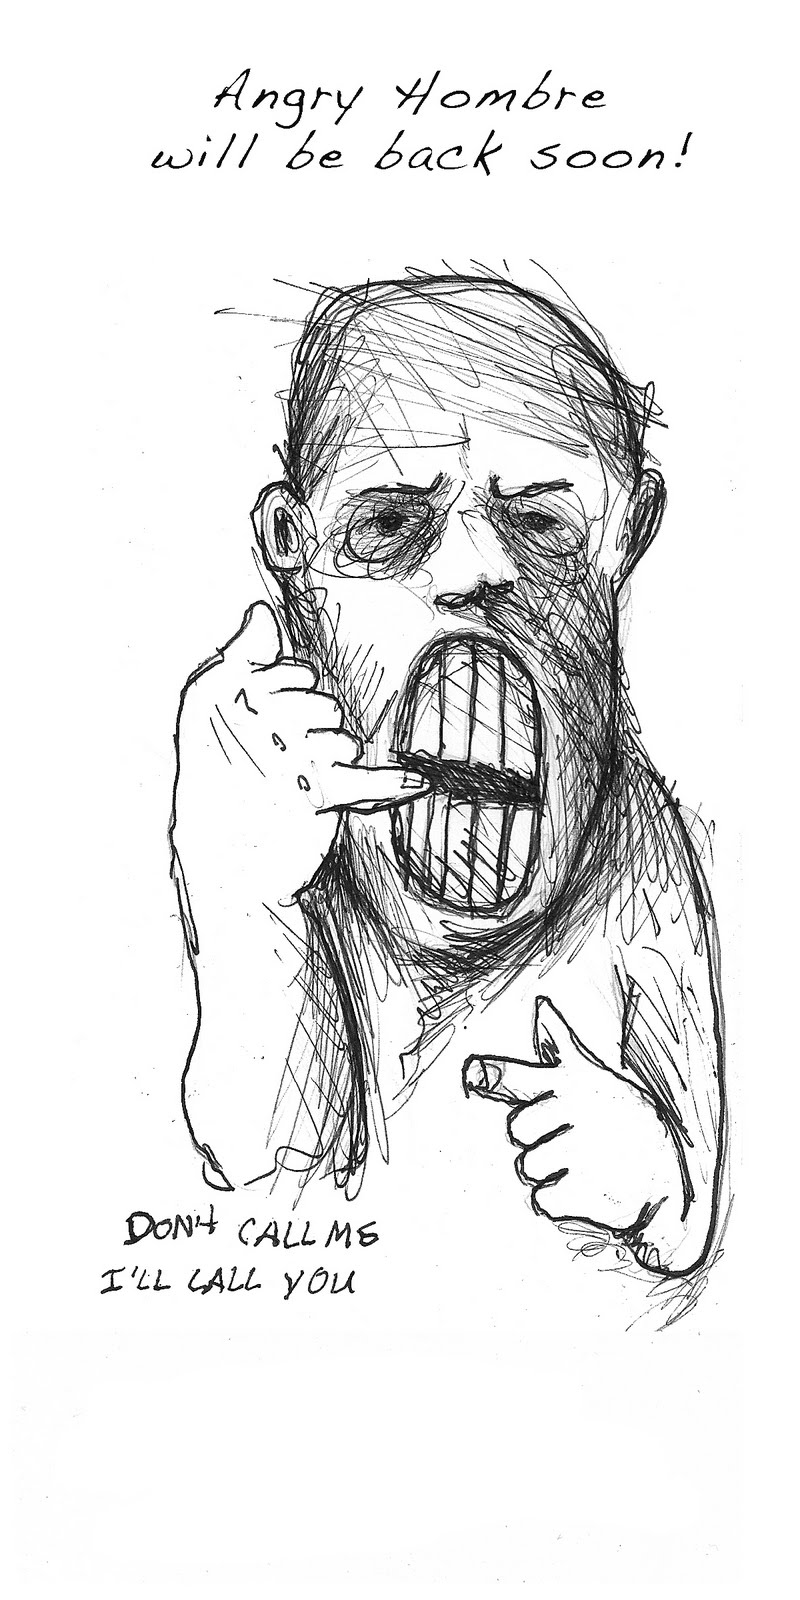 ANGRY HOMBRE: DON'T CALL ME, I'LL CALL YOU... AGAIN.